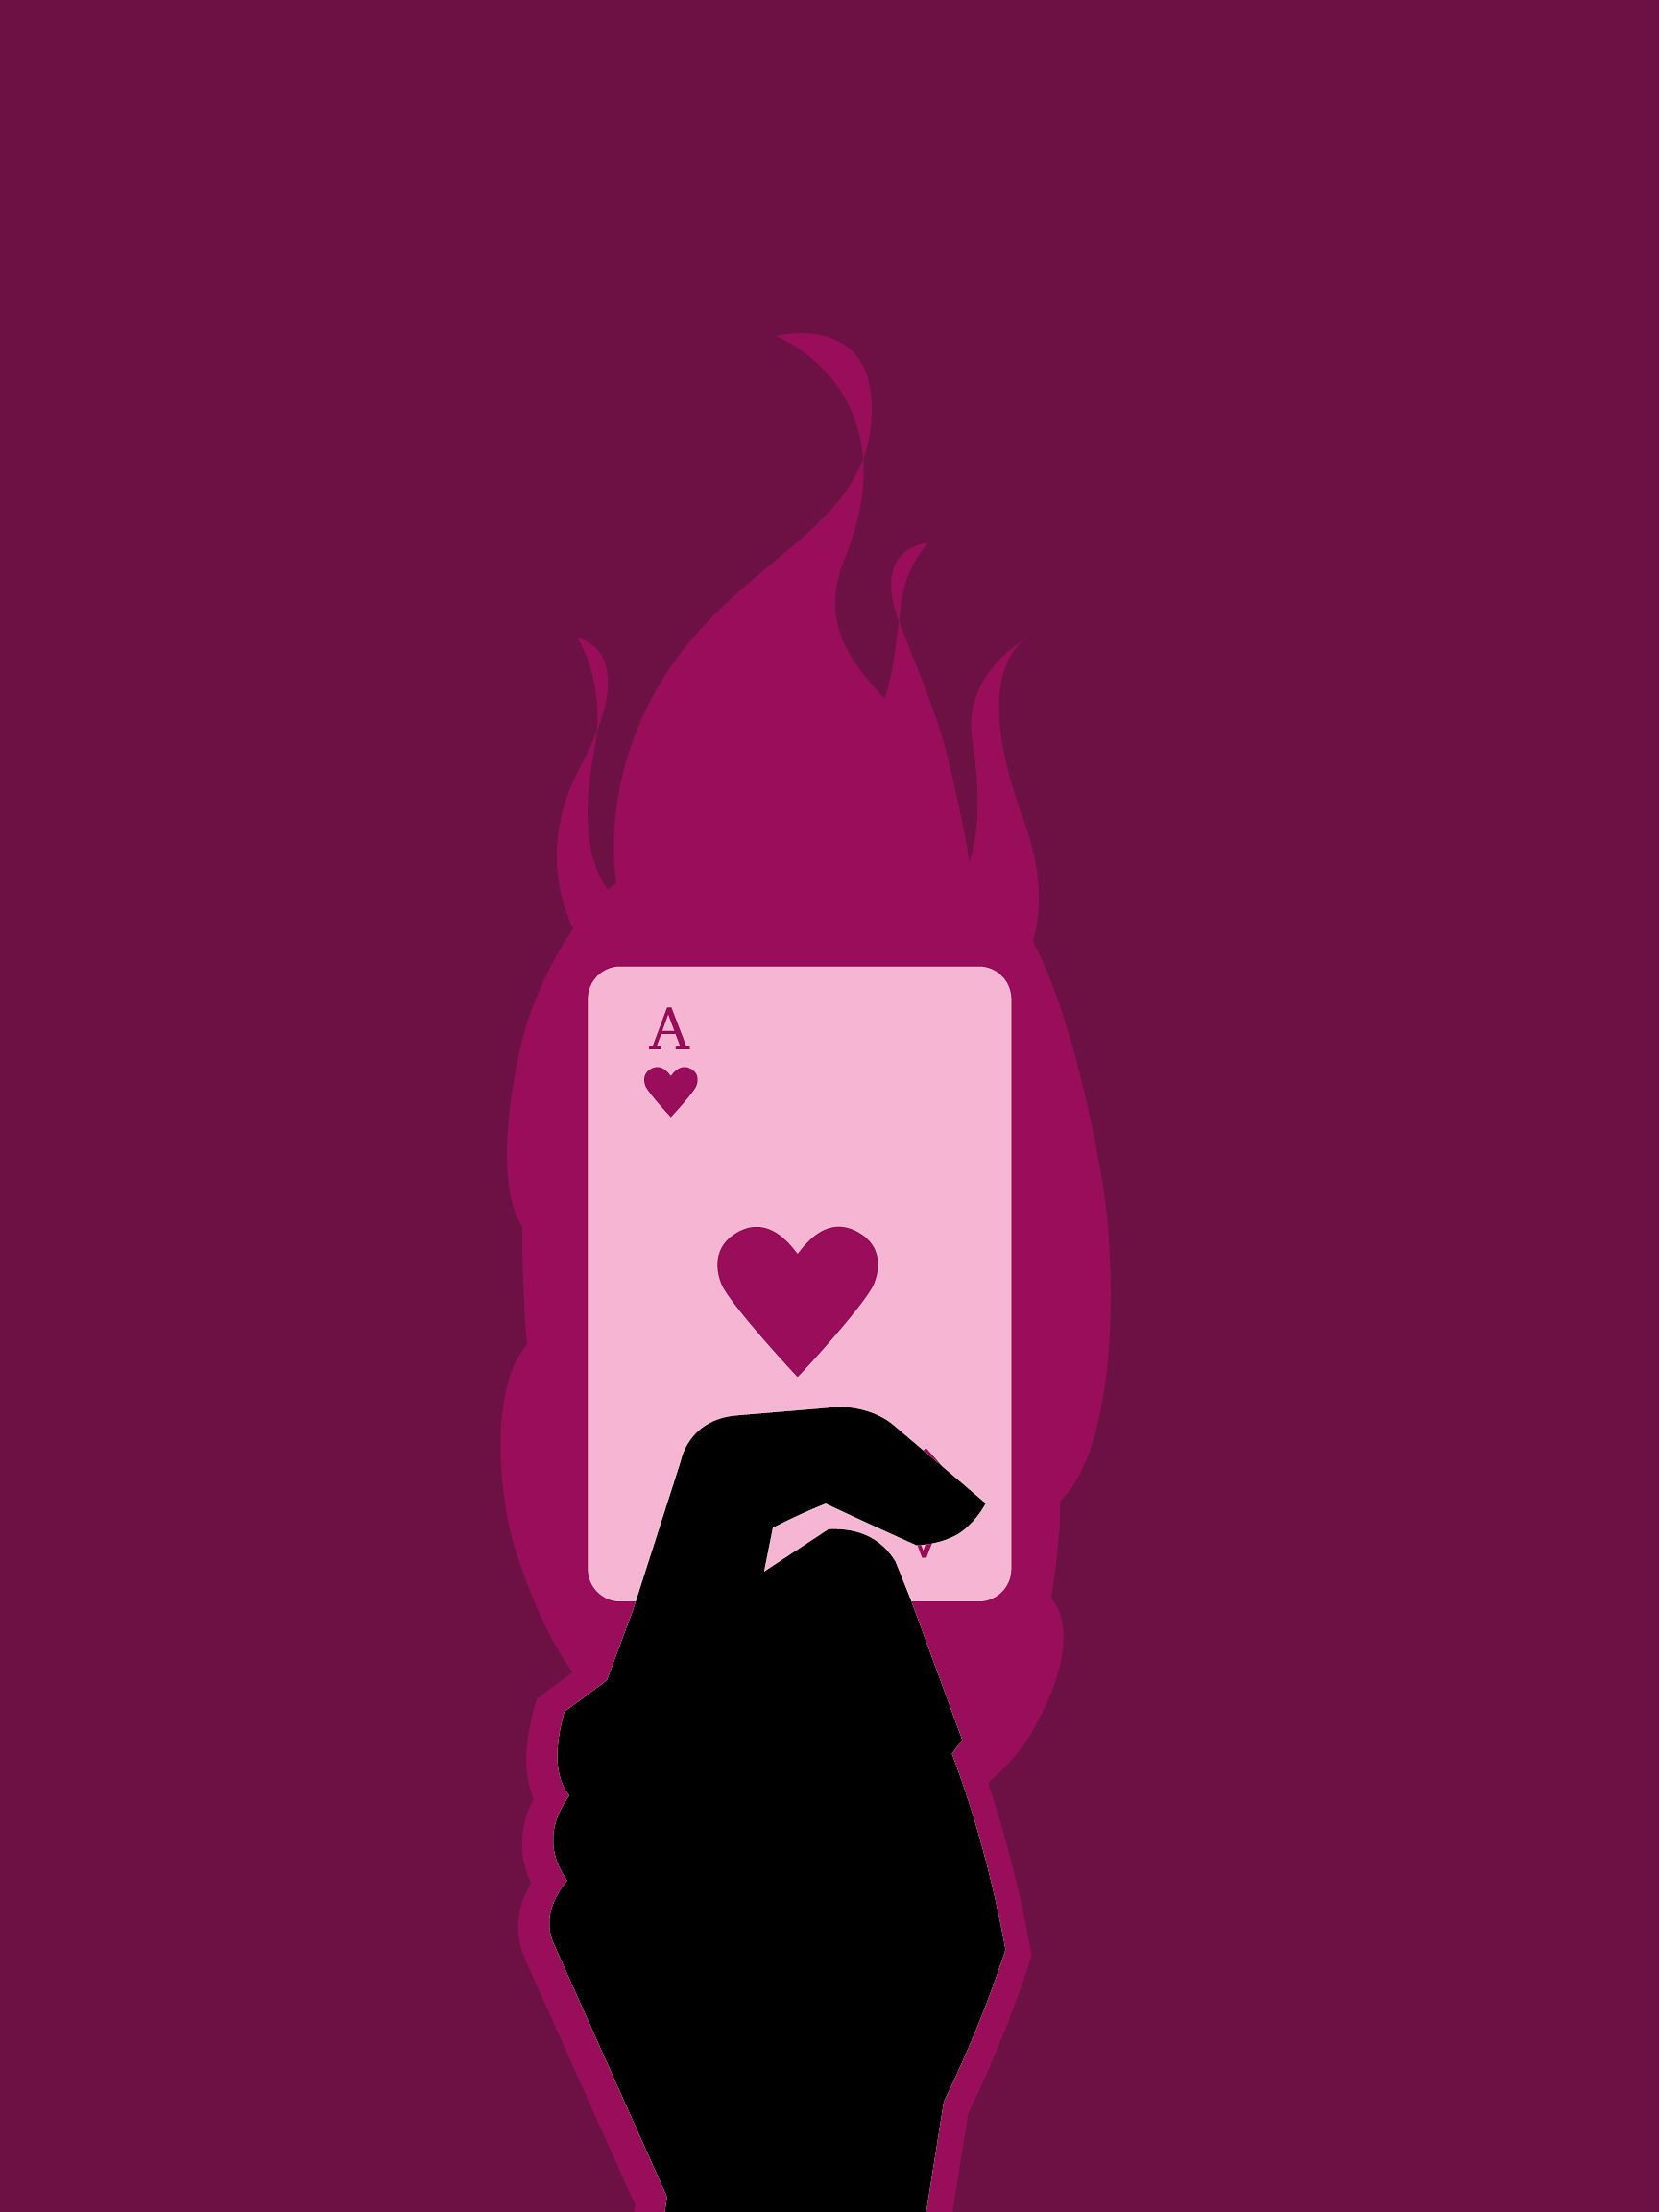 Fan art welcome to the minimalist series gambit by paul for Minimal art literatur